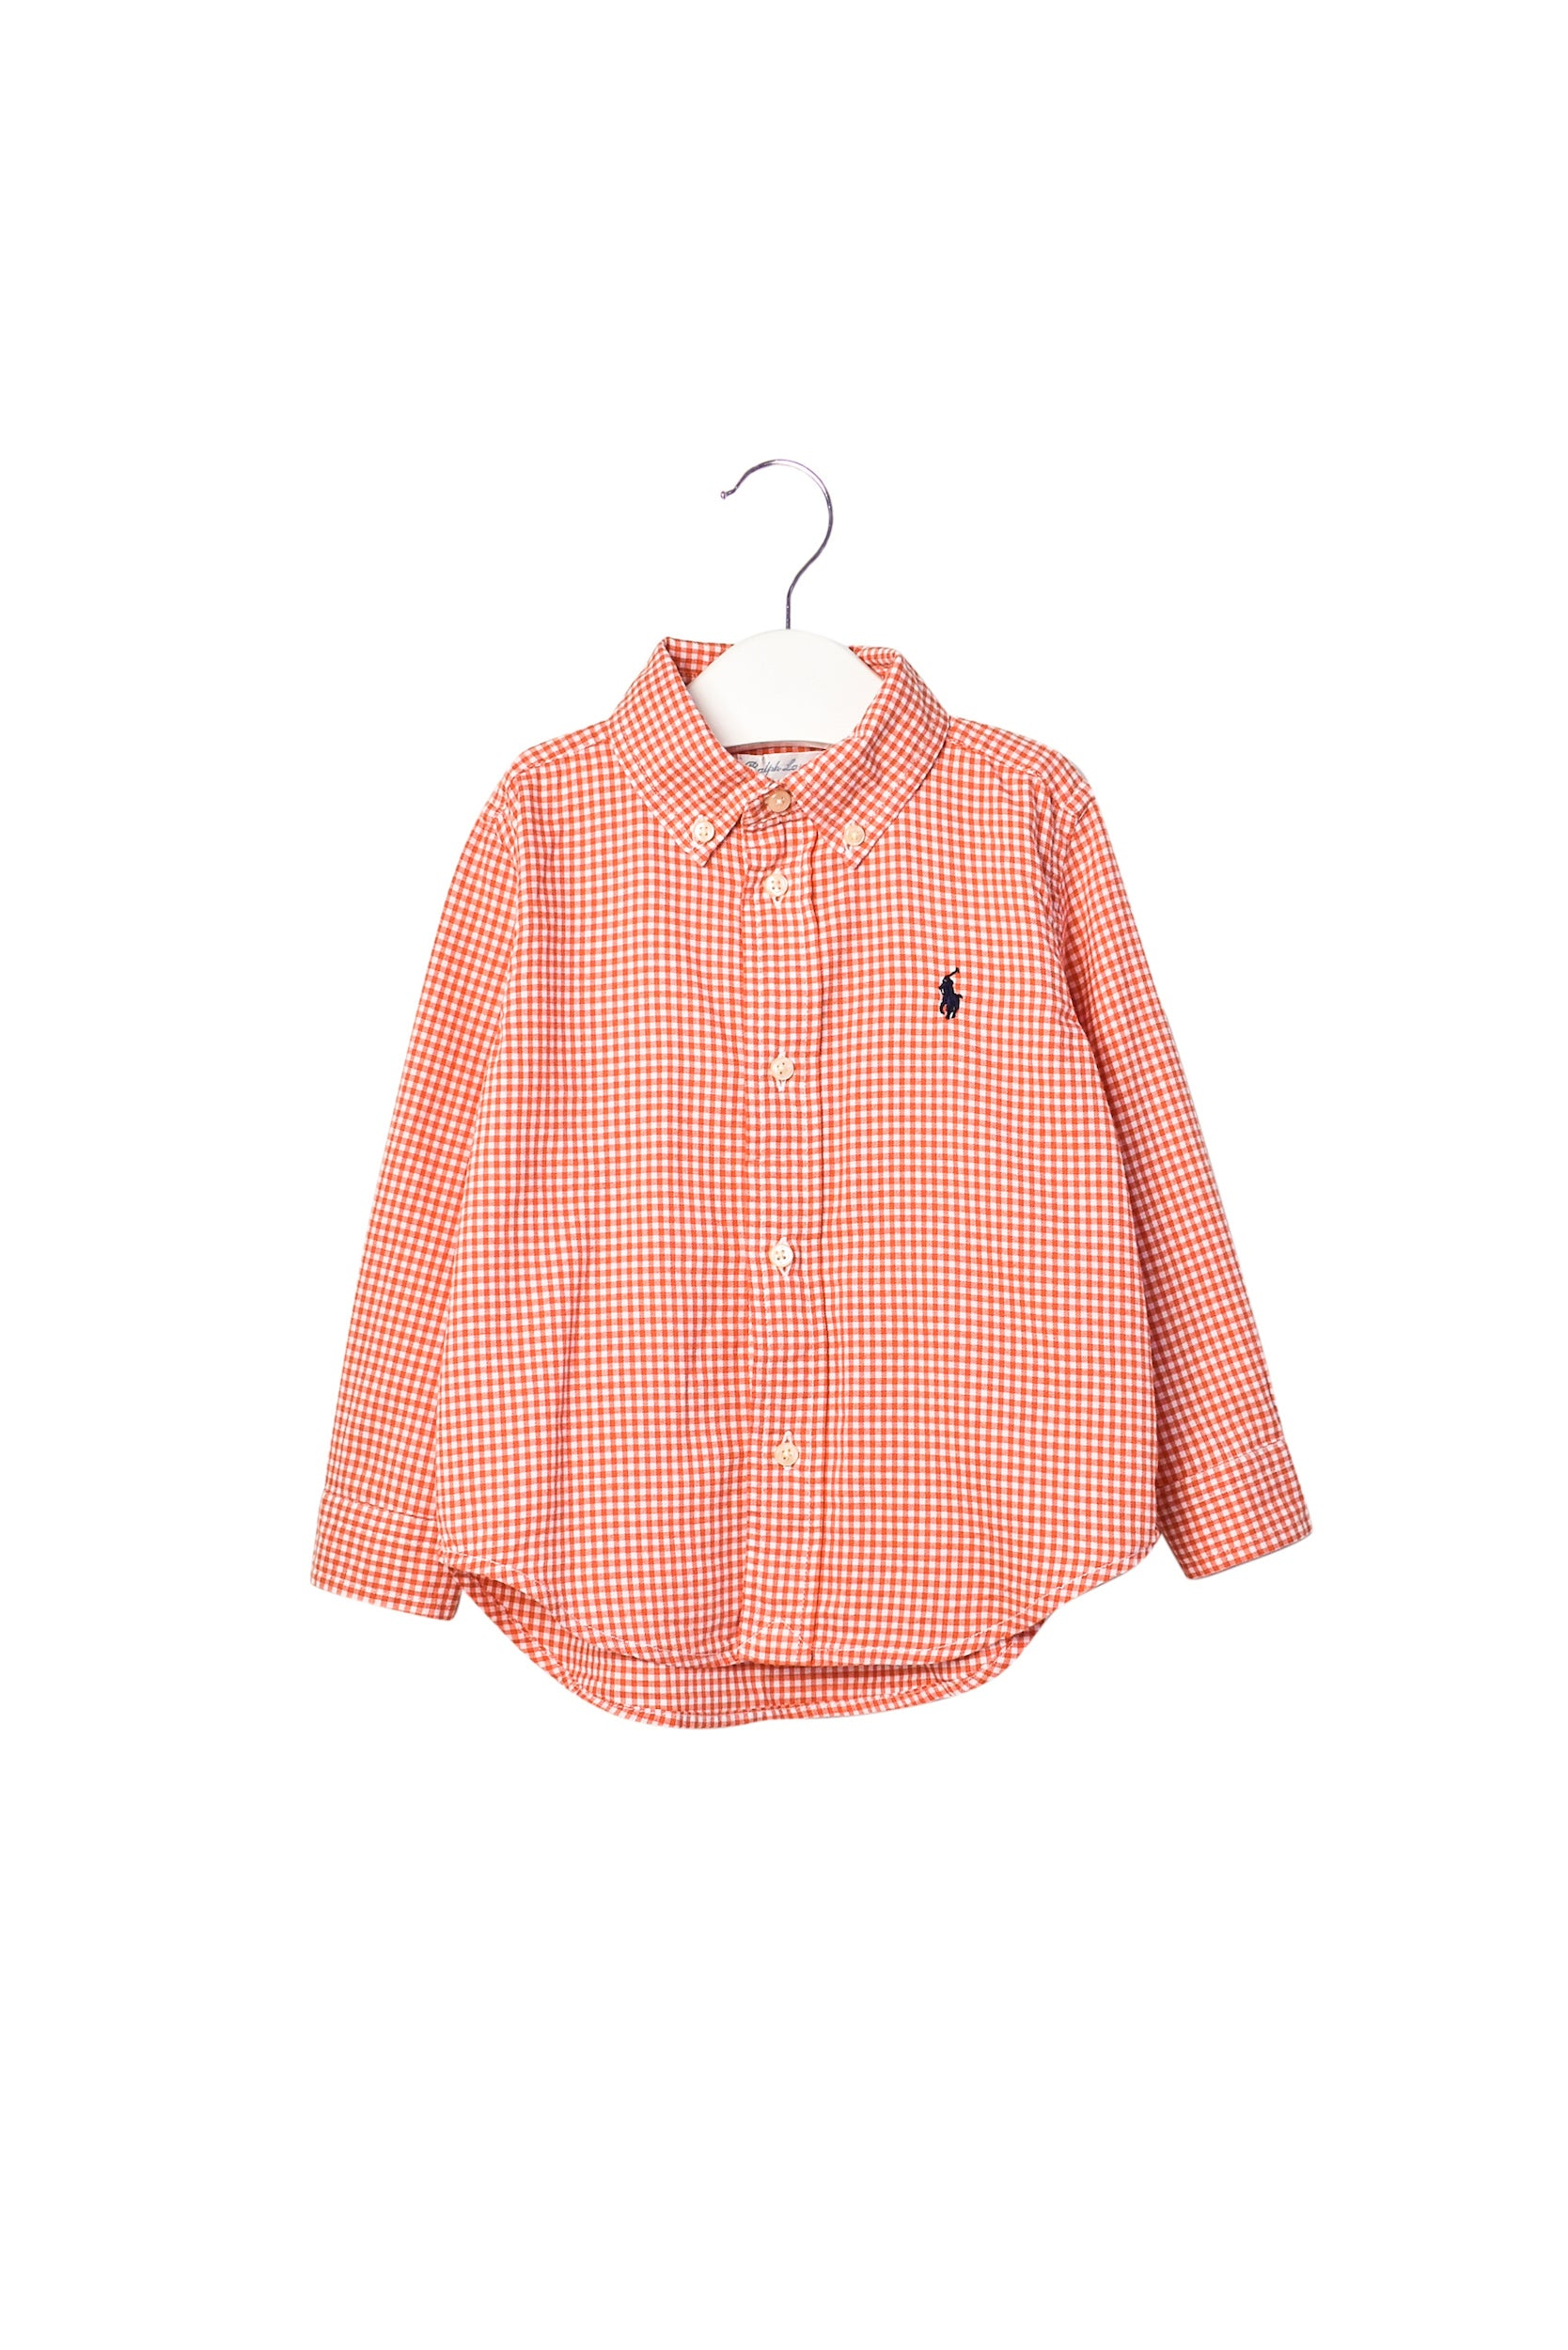 10007559 Ralph Lauren Baby ~ Shirt 24M at Retykle